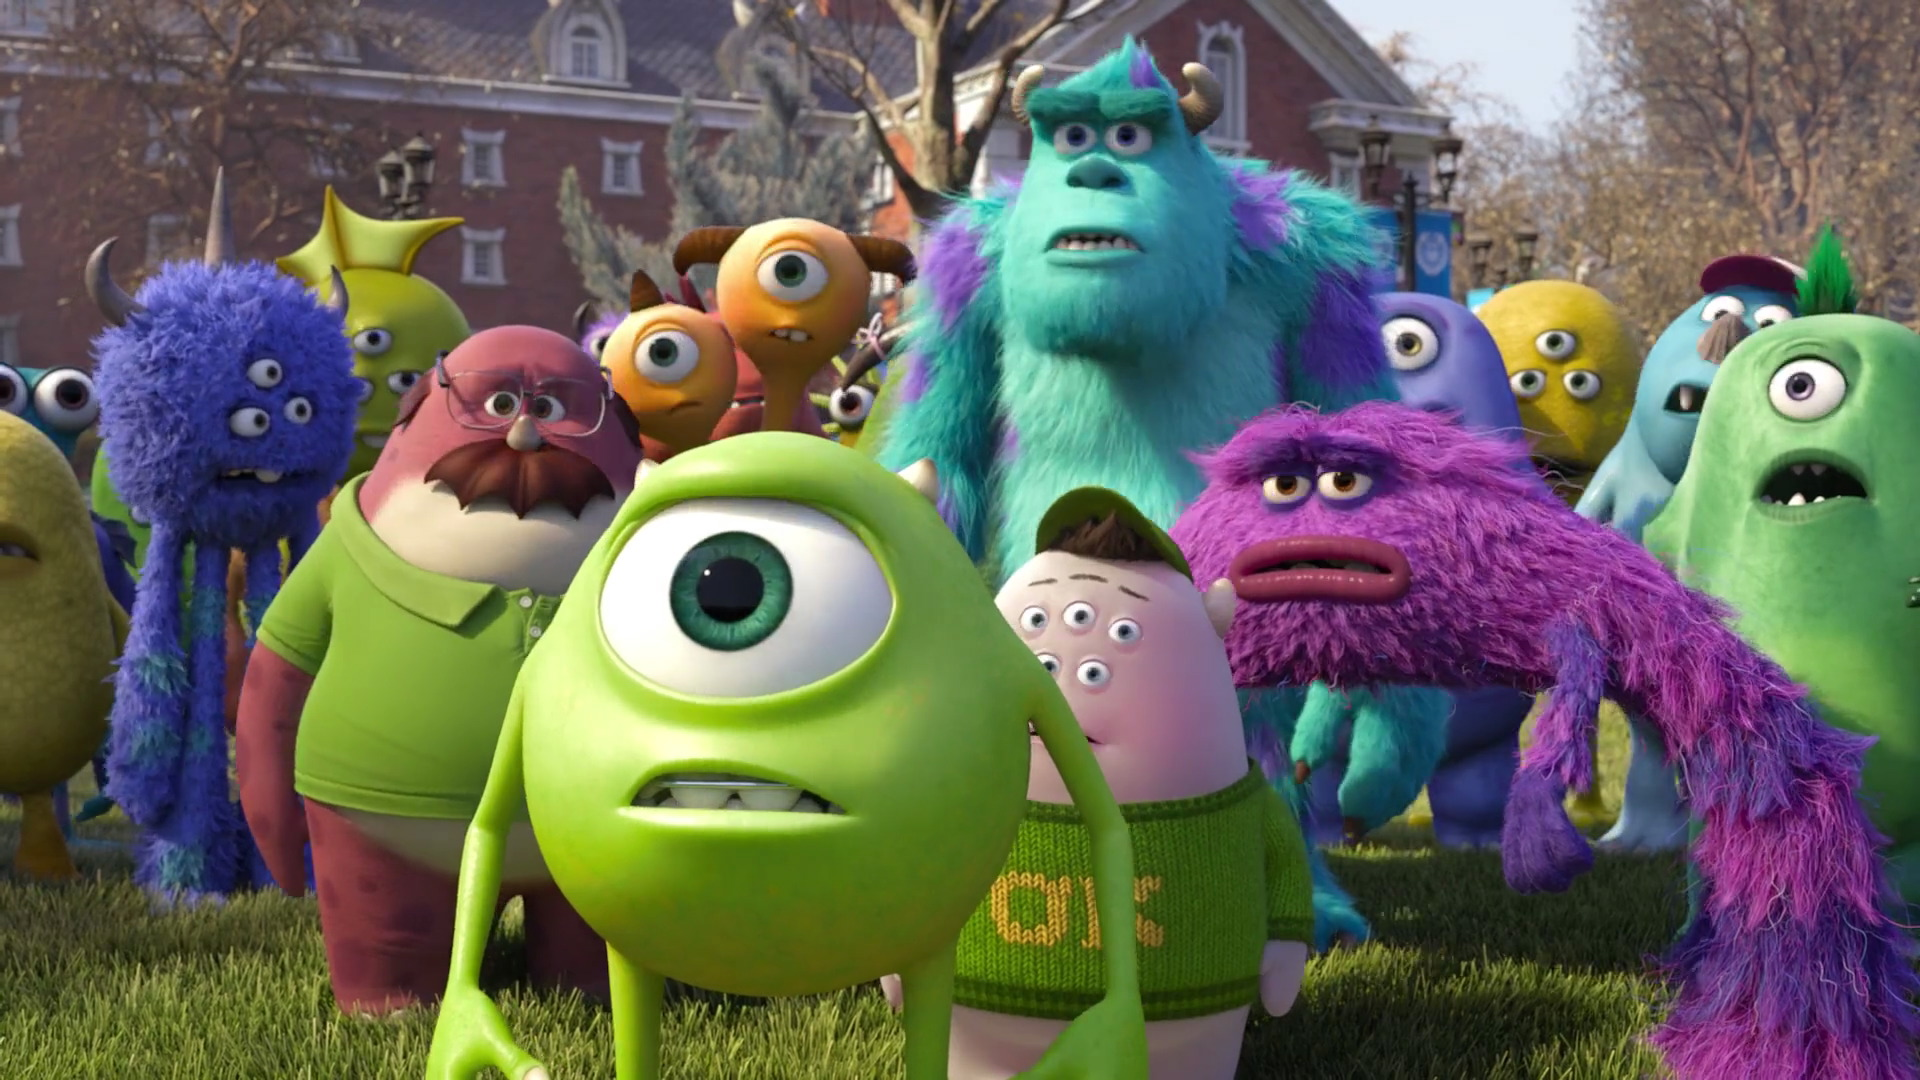 Image monsters university disneyscreencaps 6656g disney monsters university disneyscreencaps 6656g voltagebd Gallery